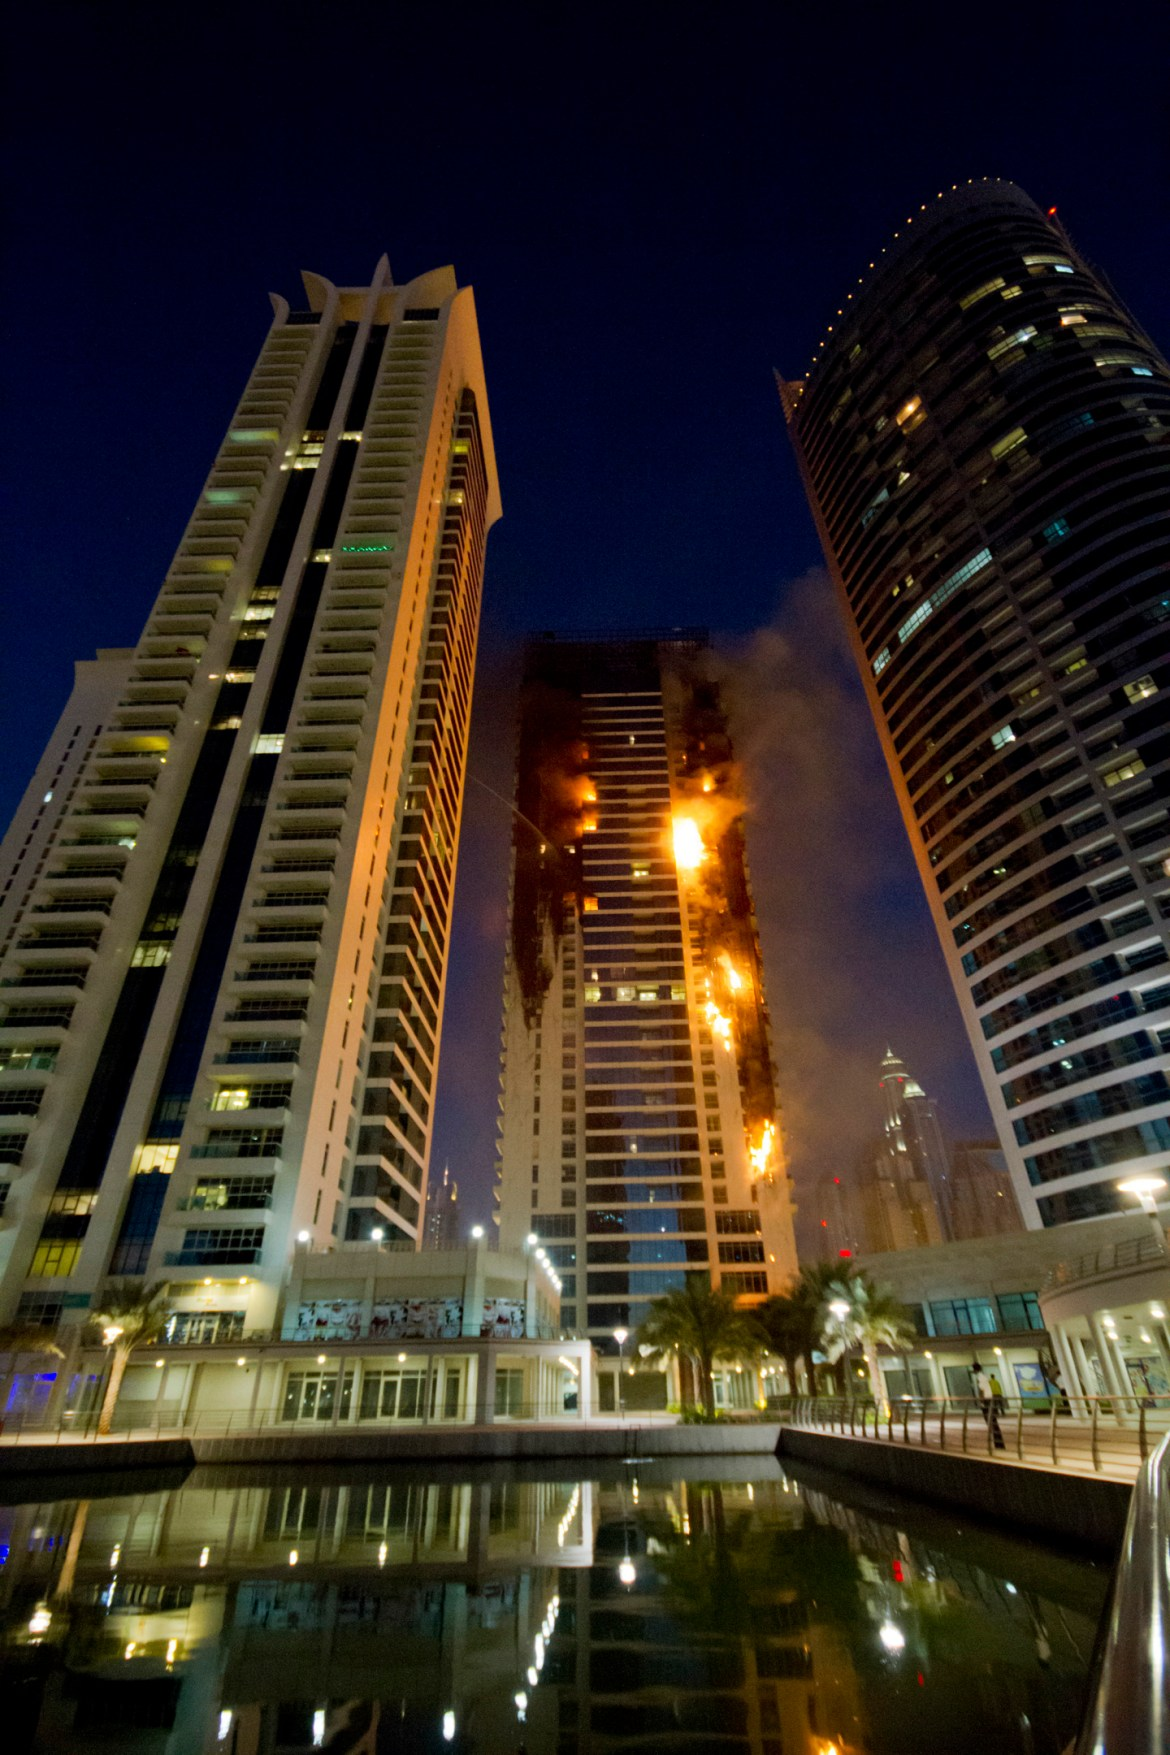 Flames engulf a portion of Tamweel residential tower at Jumeirah Lakes Towers, in Dubai, United Arab Emirates, Sunday, Nov. 18, 2012. Civil defense officials did not give immediate details on possible casualties or the cause of the predawn fire. (AP Photo/Kaveh Kashani)